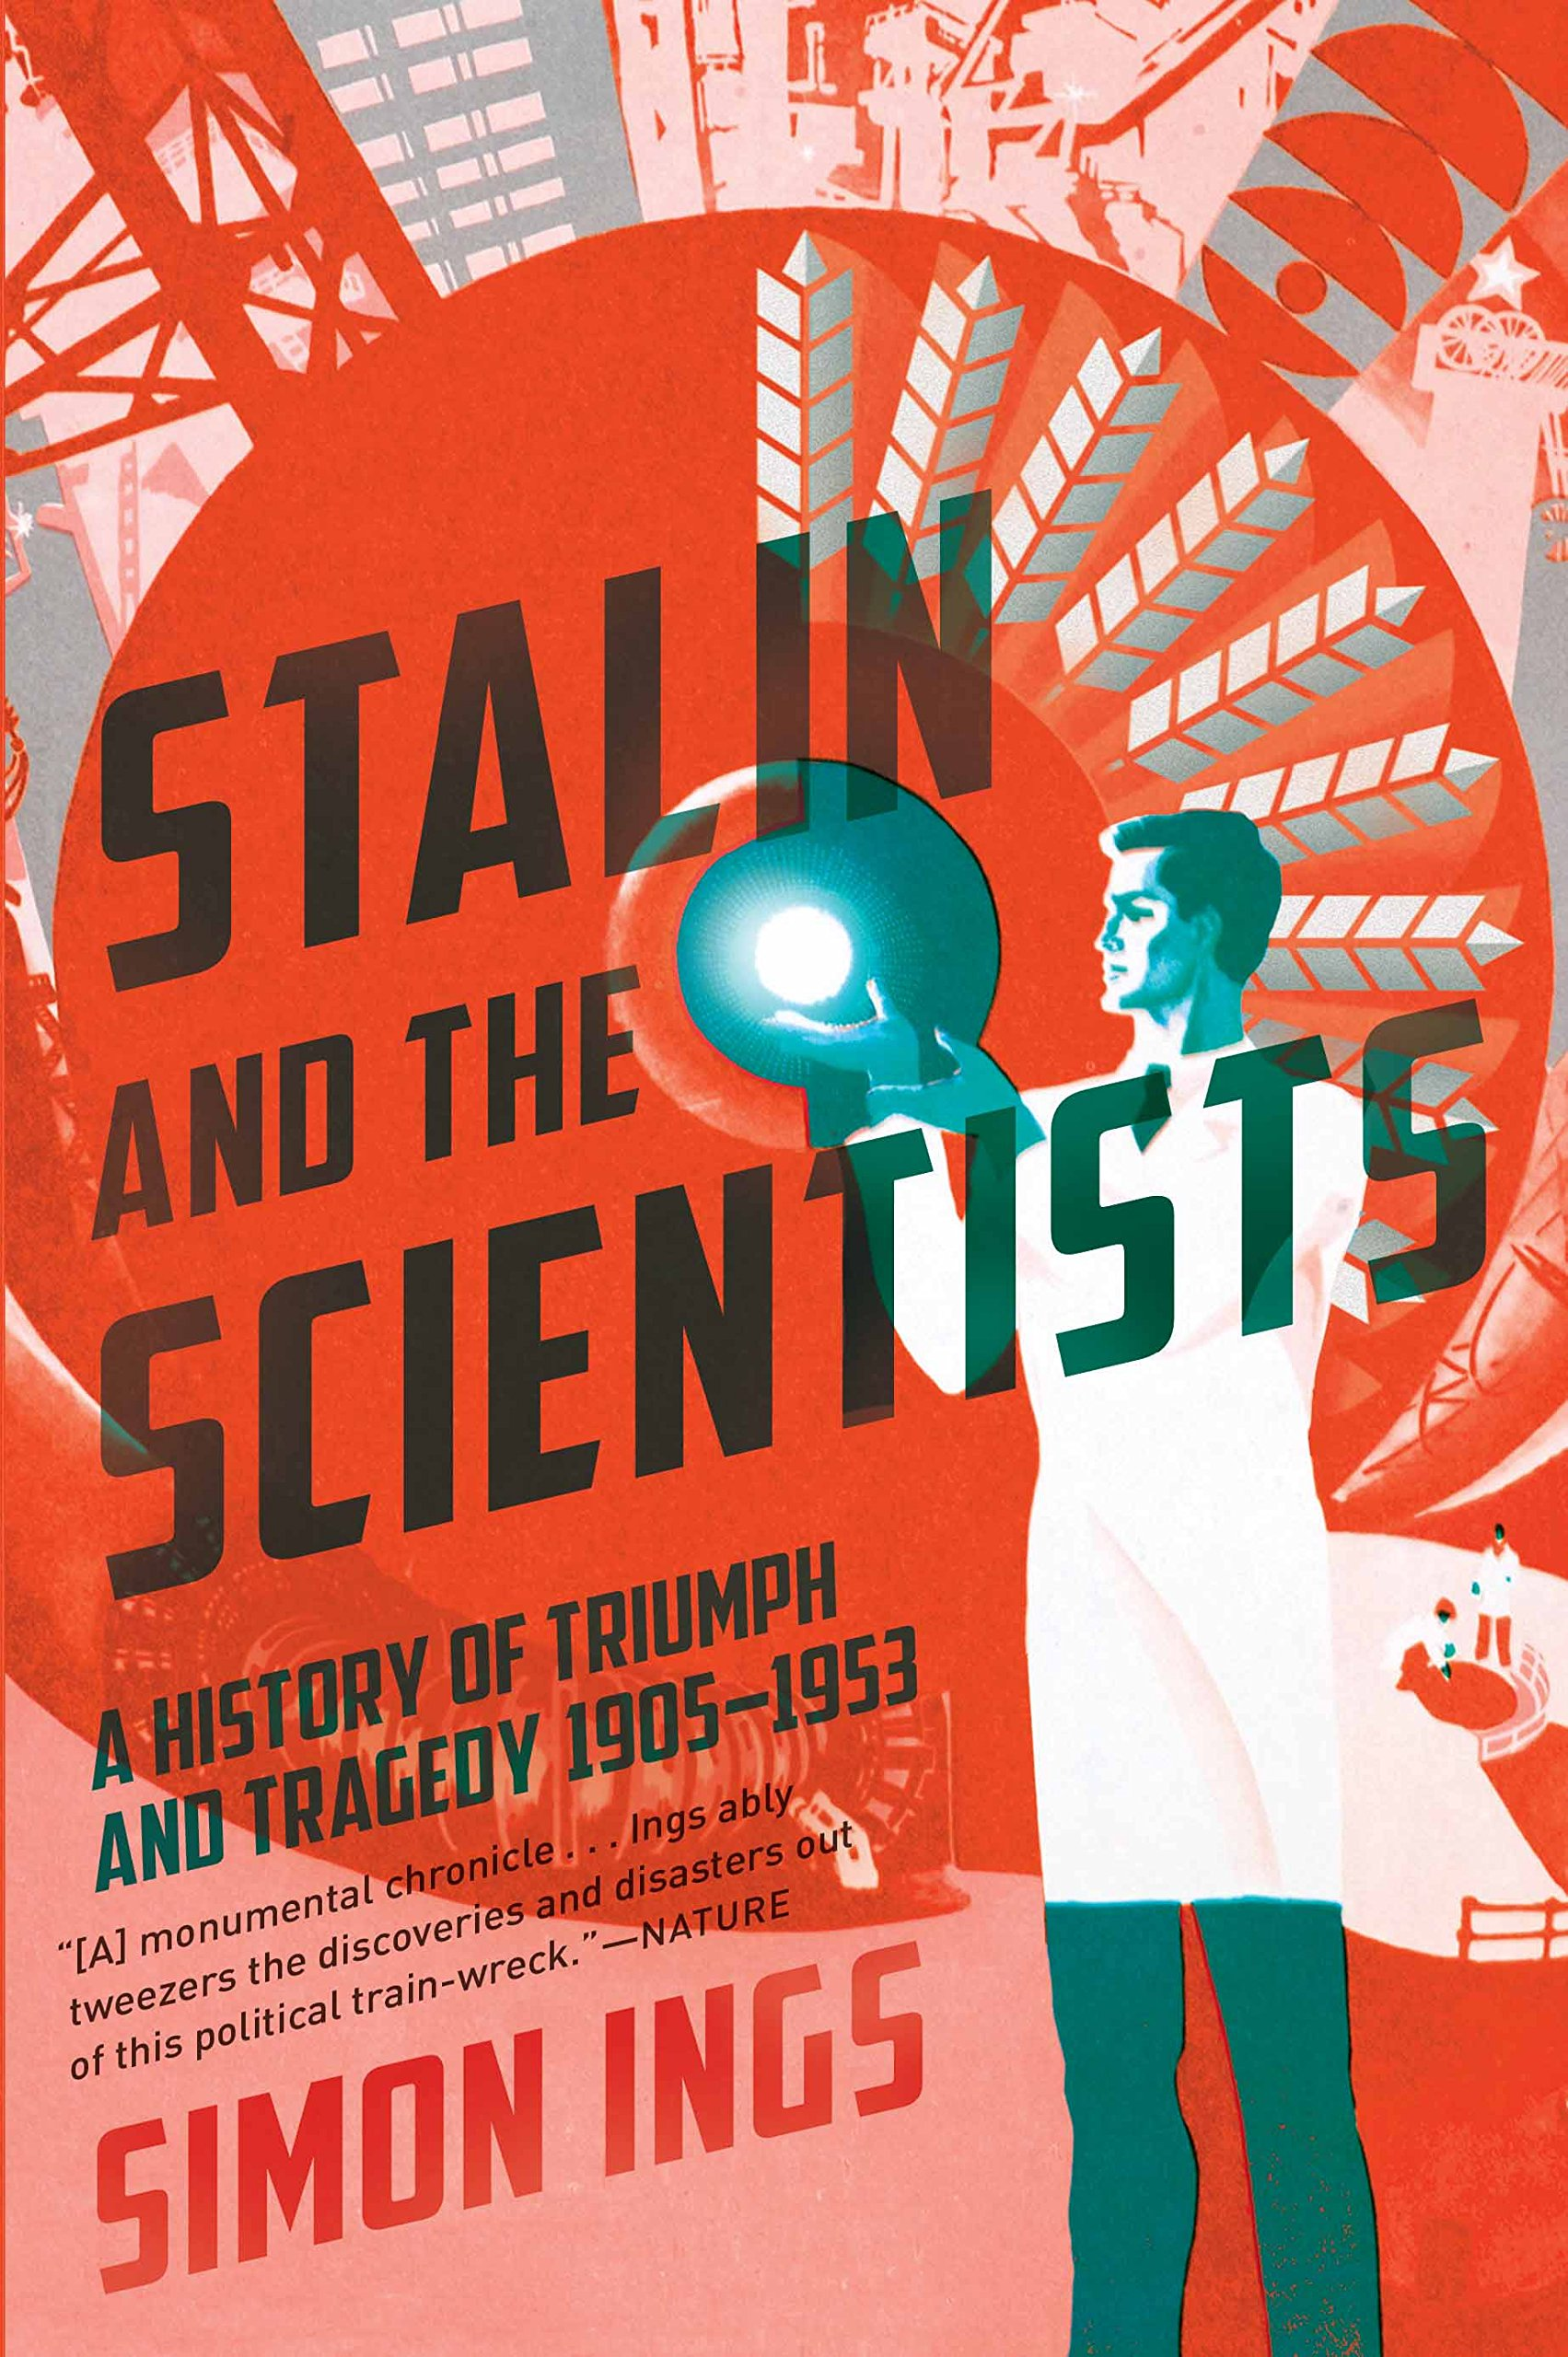 Stalin and the Scientists: A History of Triumph and Tragedy, 1905-1953:  Simon Ings: 9780802125989: Amazon.com: Books